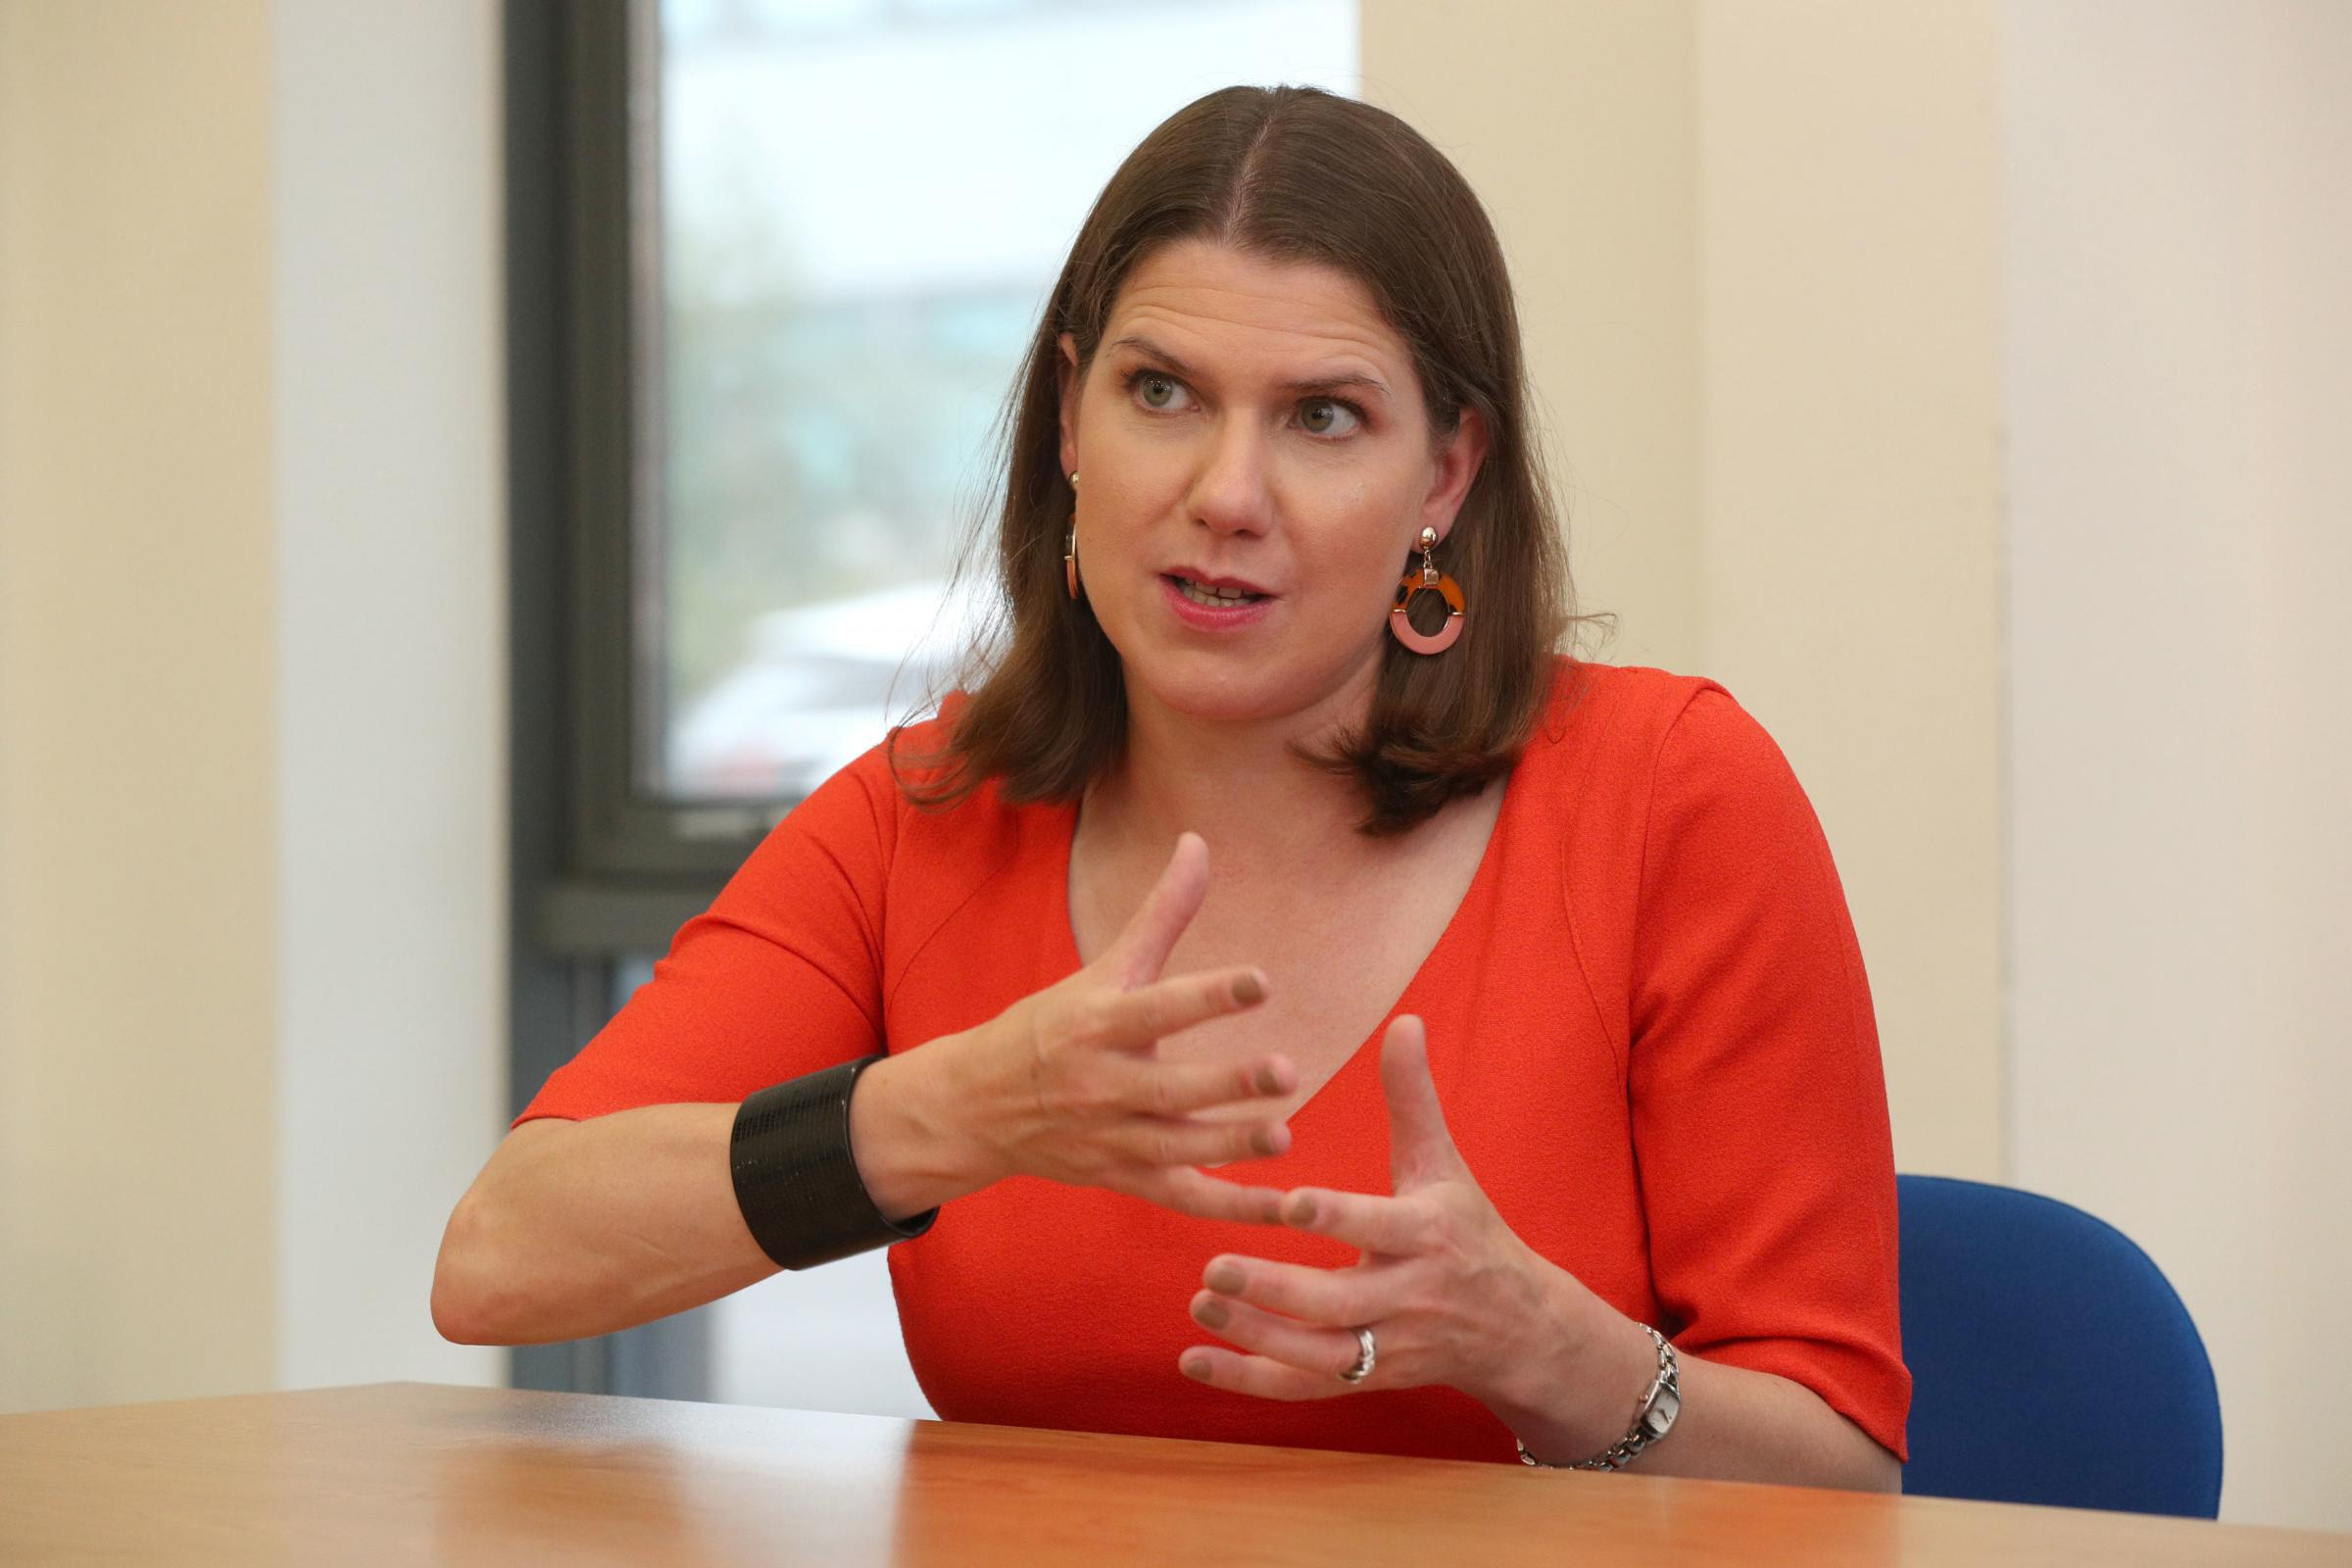 Jo Swinson accused of 'utterly grotesque' hypocrisy on Brexit and independence referendums